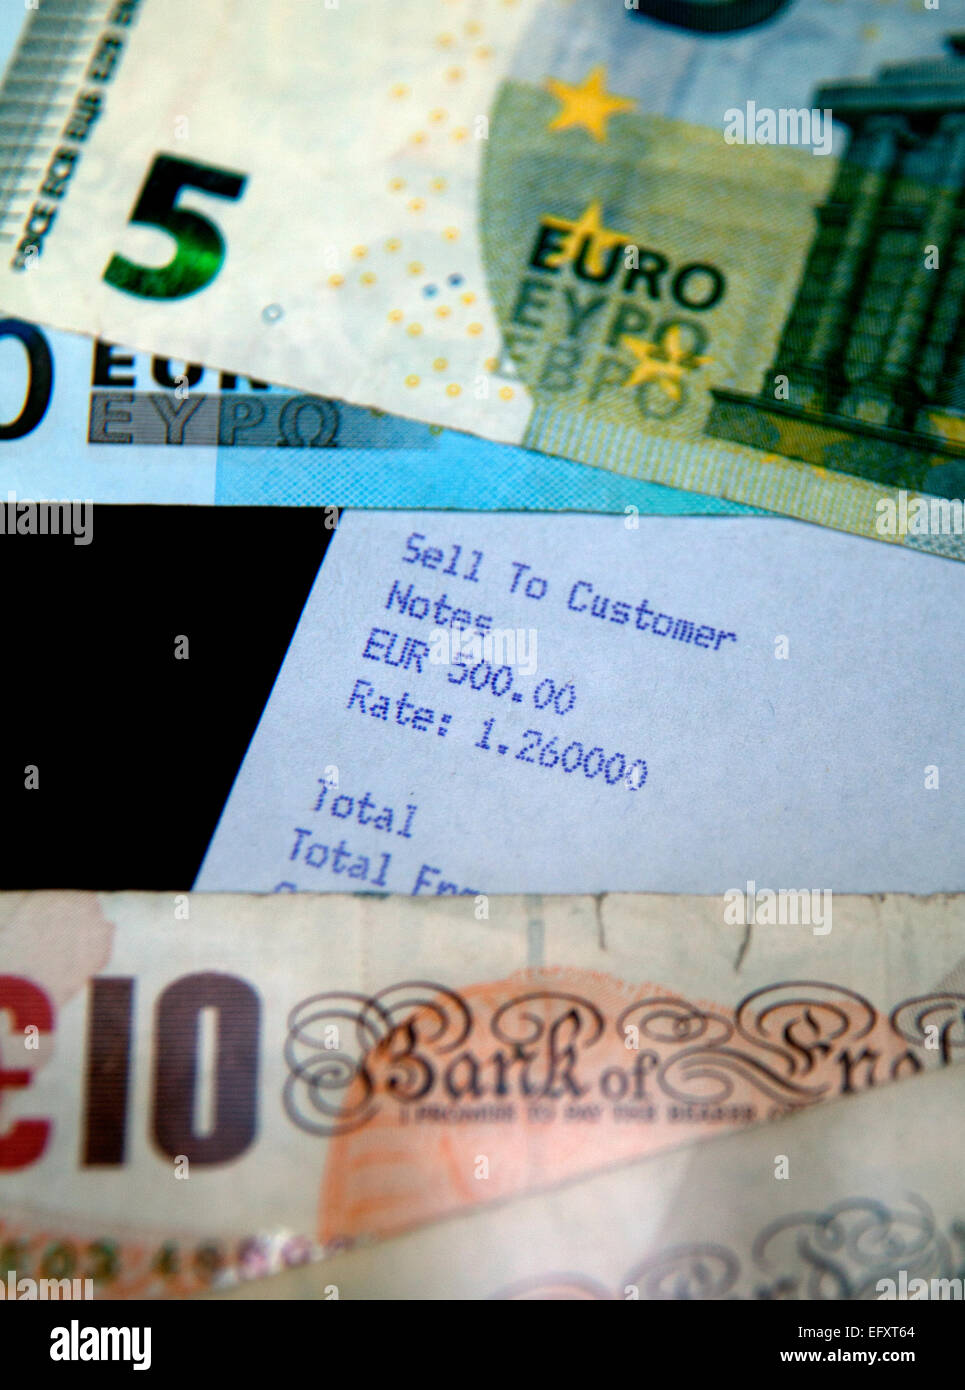 Convertir Euros En Libras Esterlinas British Pounds And Euros Exchange Imágenes De Stock British